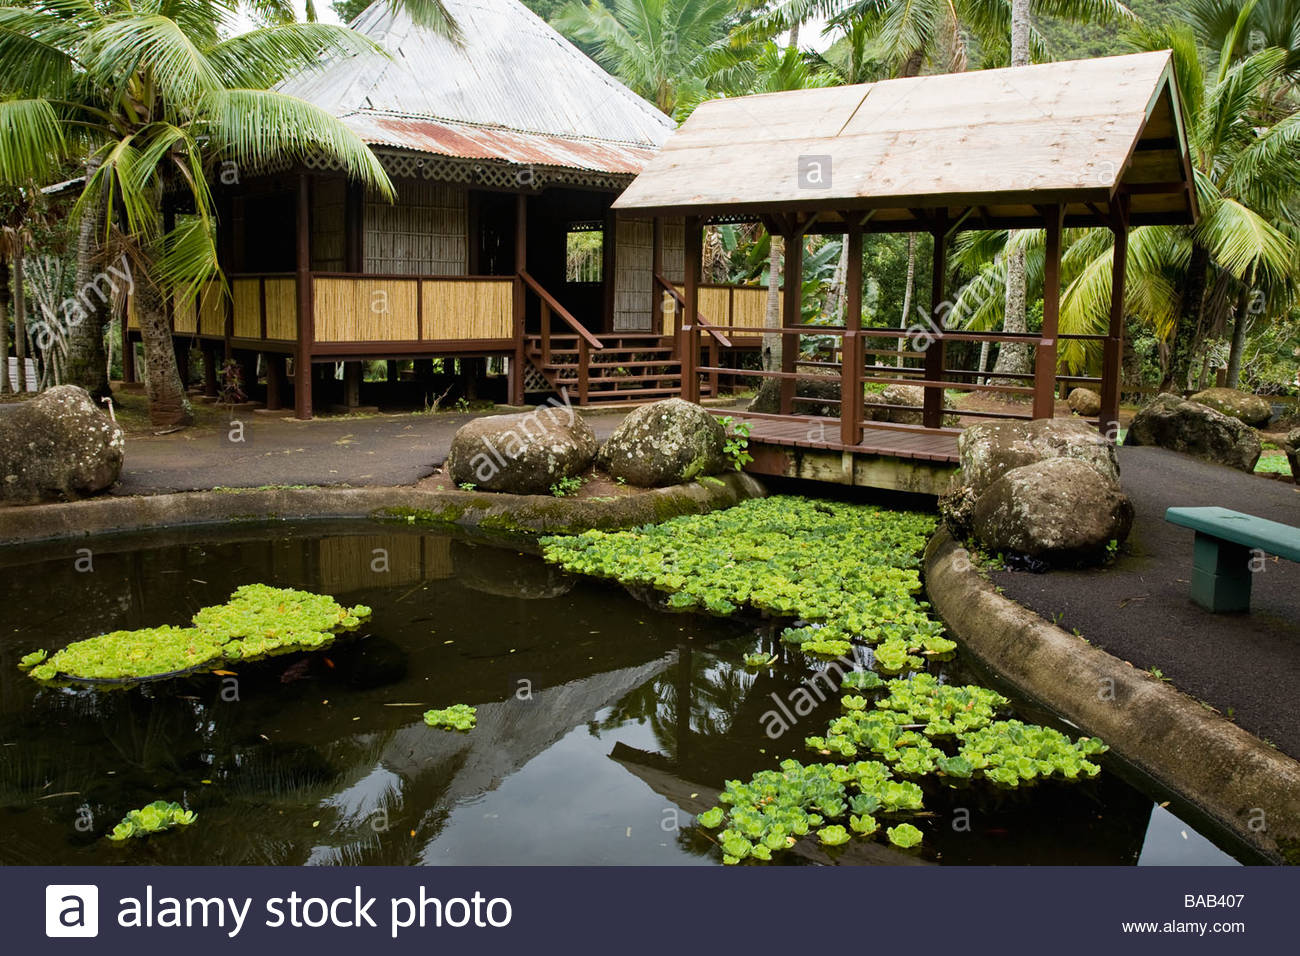 Nipa hut or bahay kubo in phillipines section in heritage gardens in kepaniwai park on island